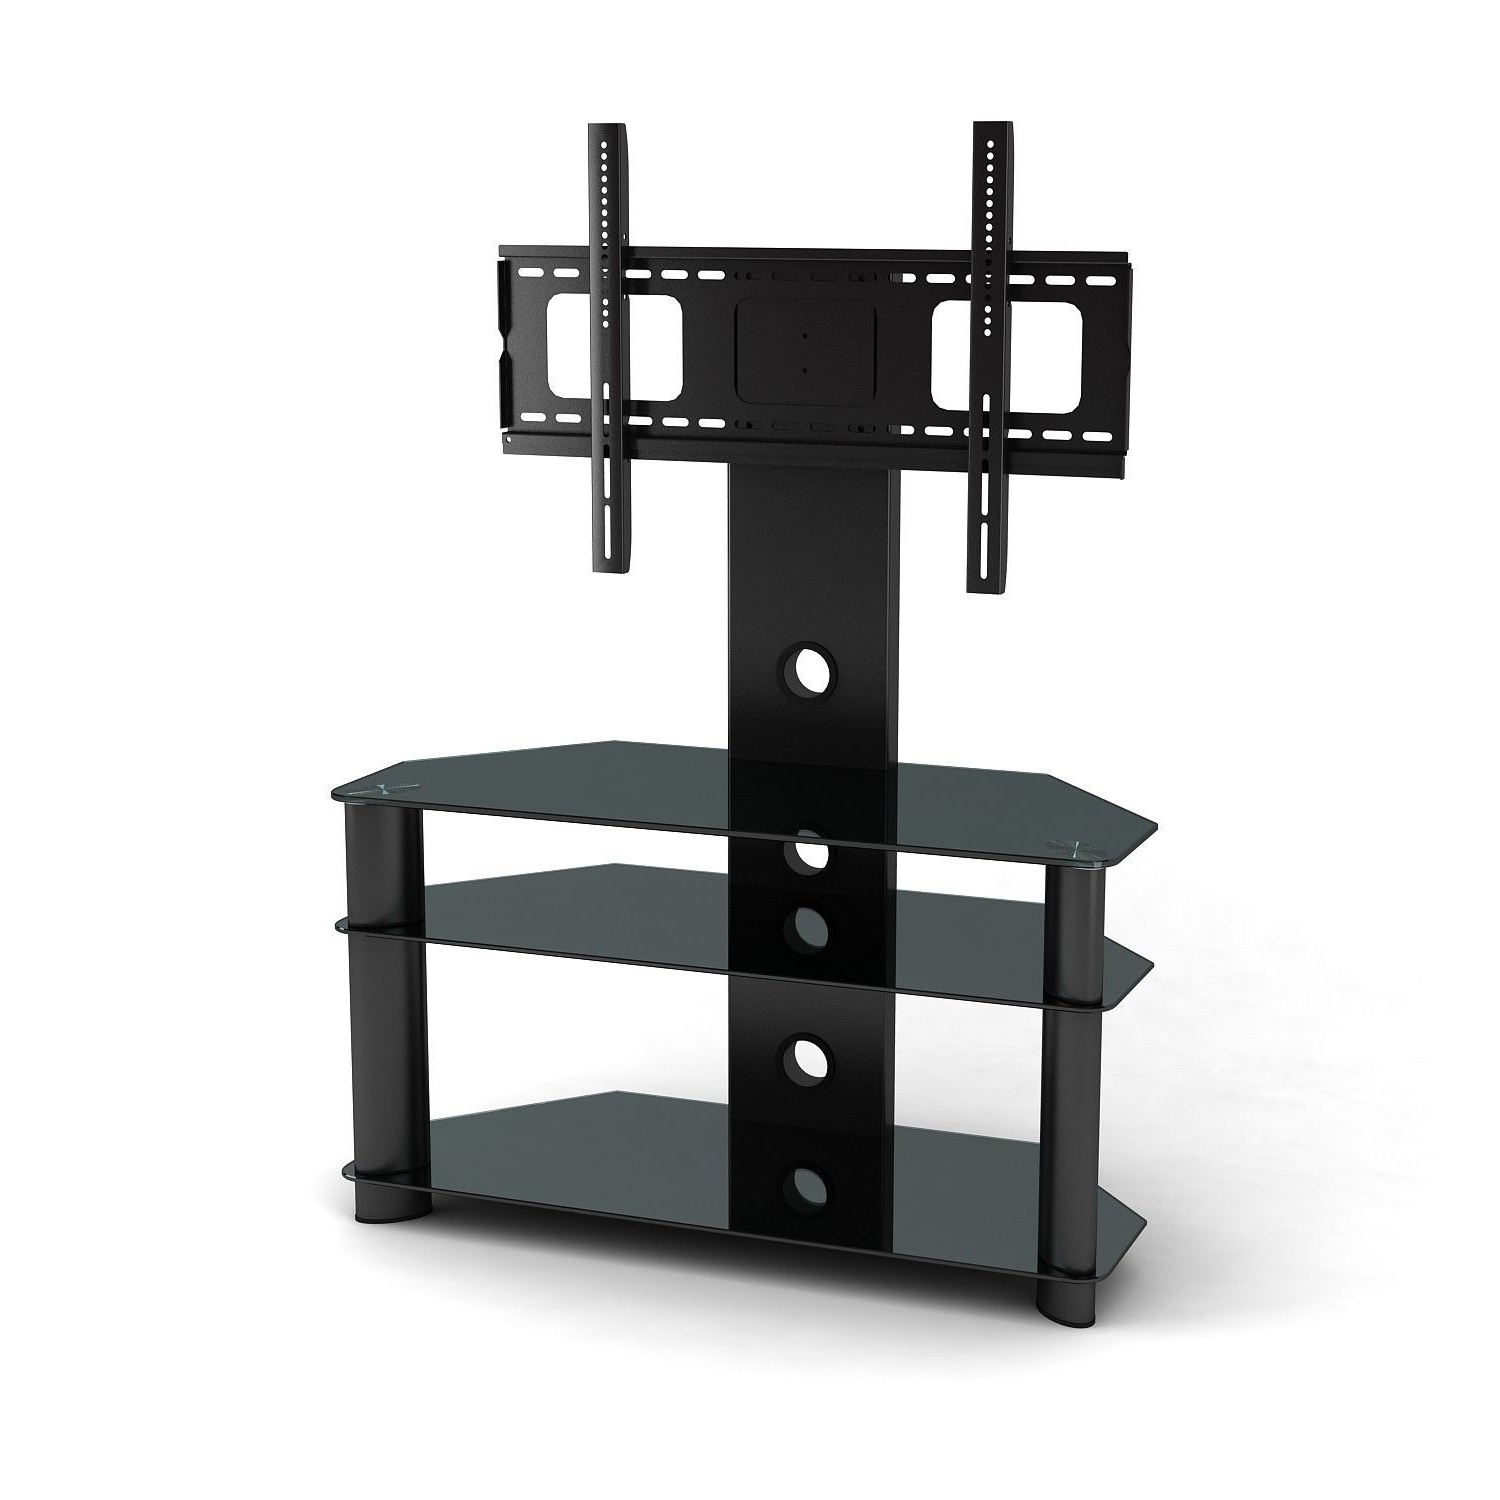 Fashionable Tabletop Tv Stands For Tabletop Tv Stand Best Buy Universal 60 Inch Floor Diy Adjustable (Gallery 18 of 20)